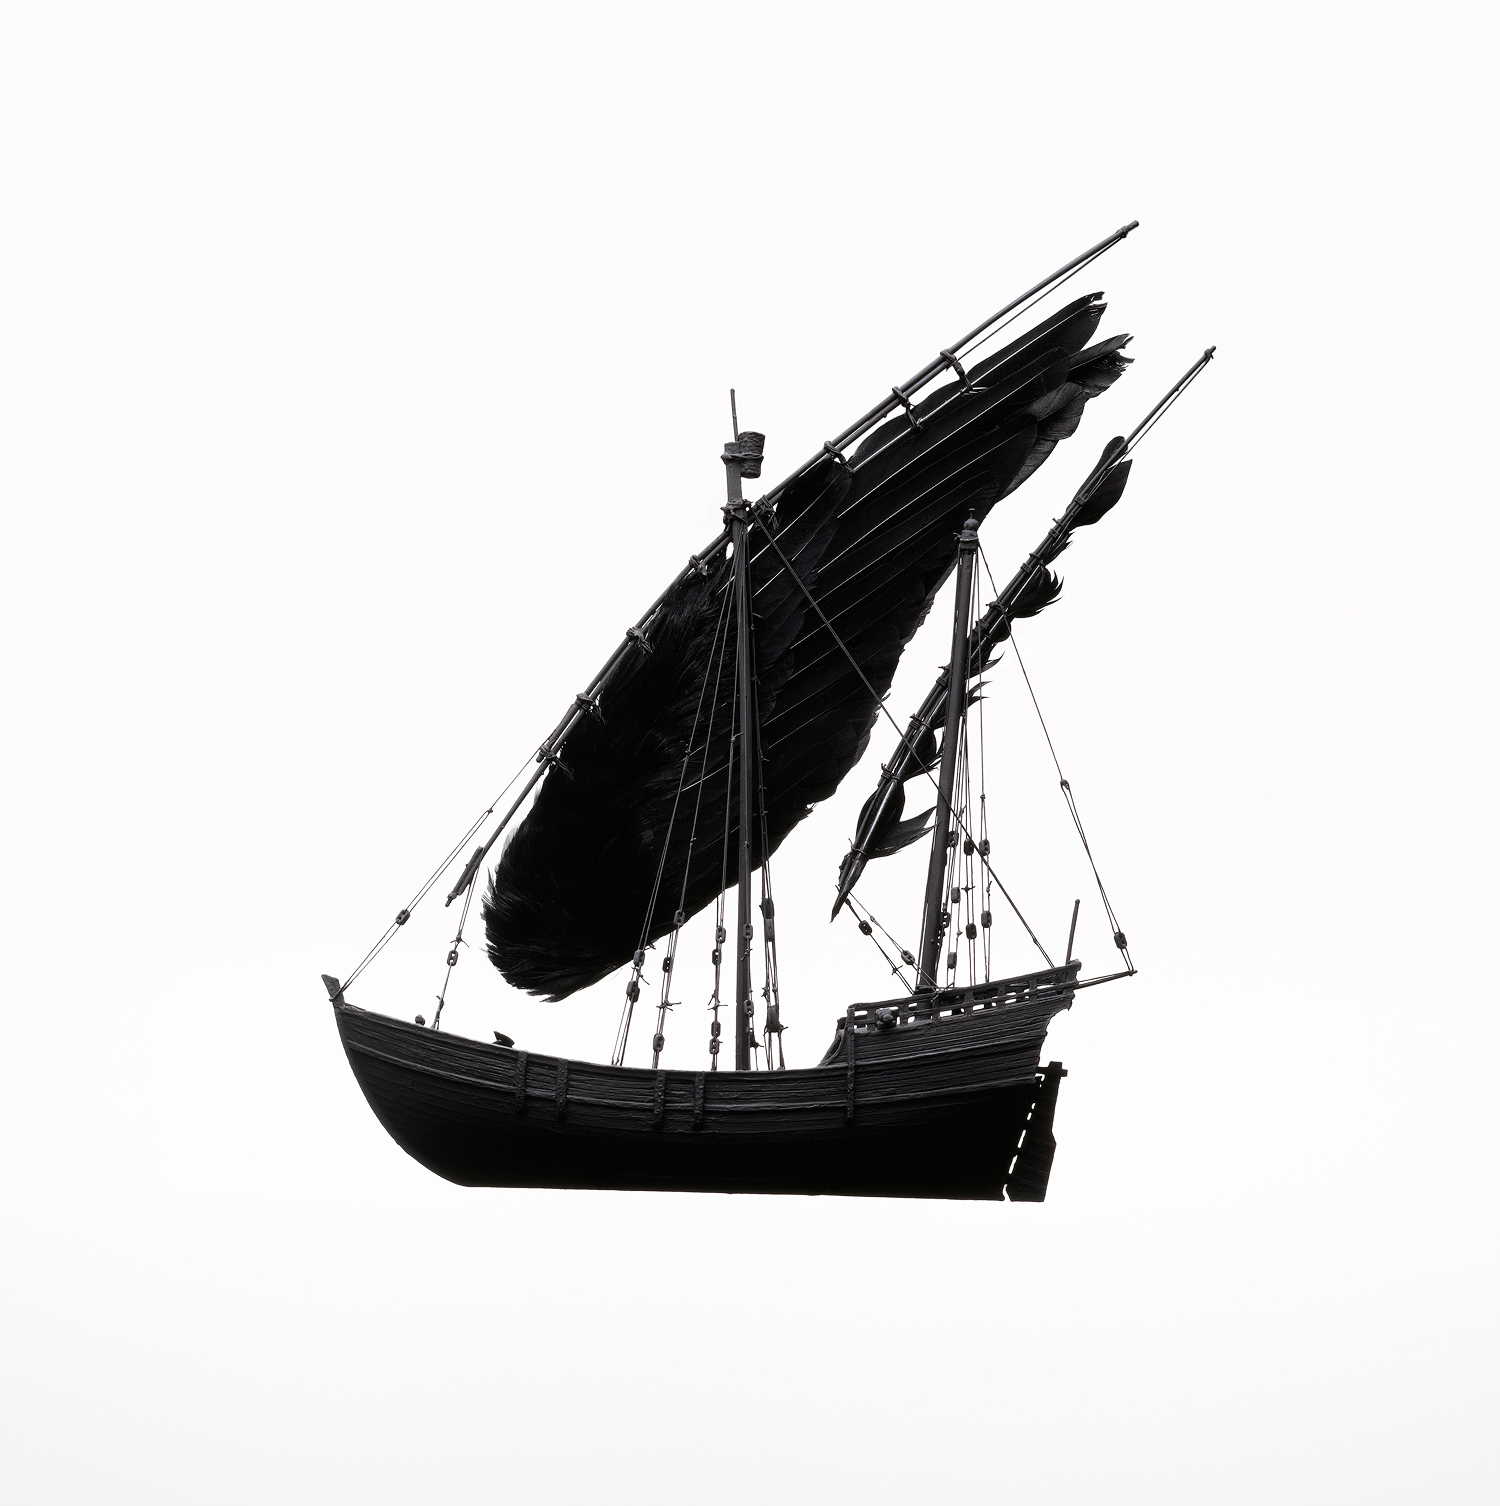 Boat with Feather Sail